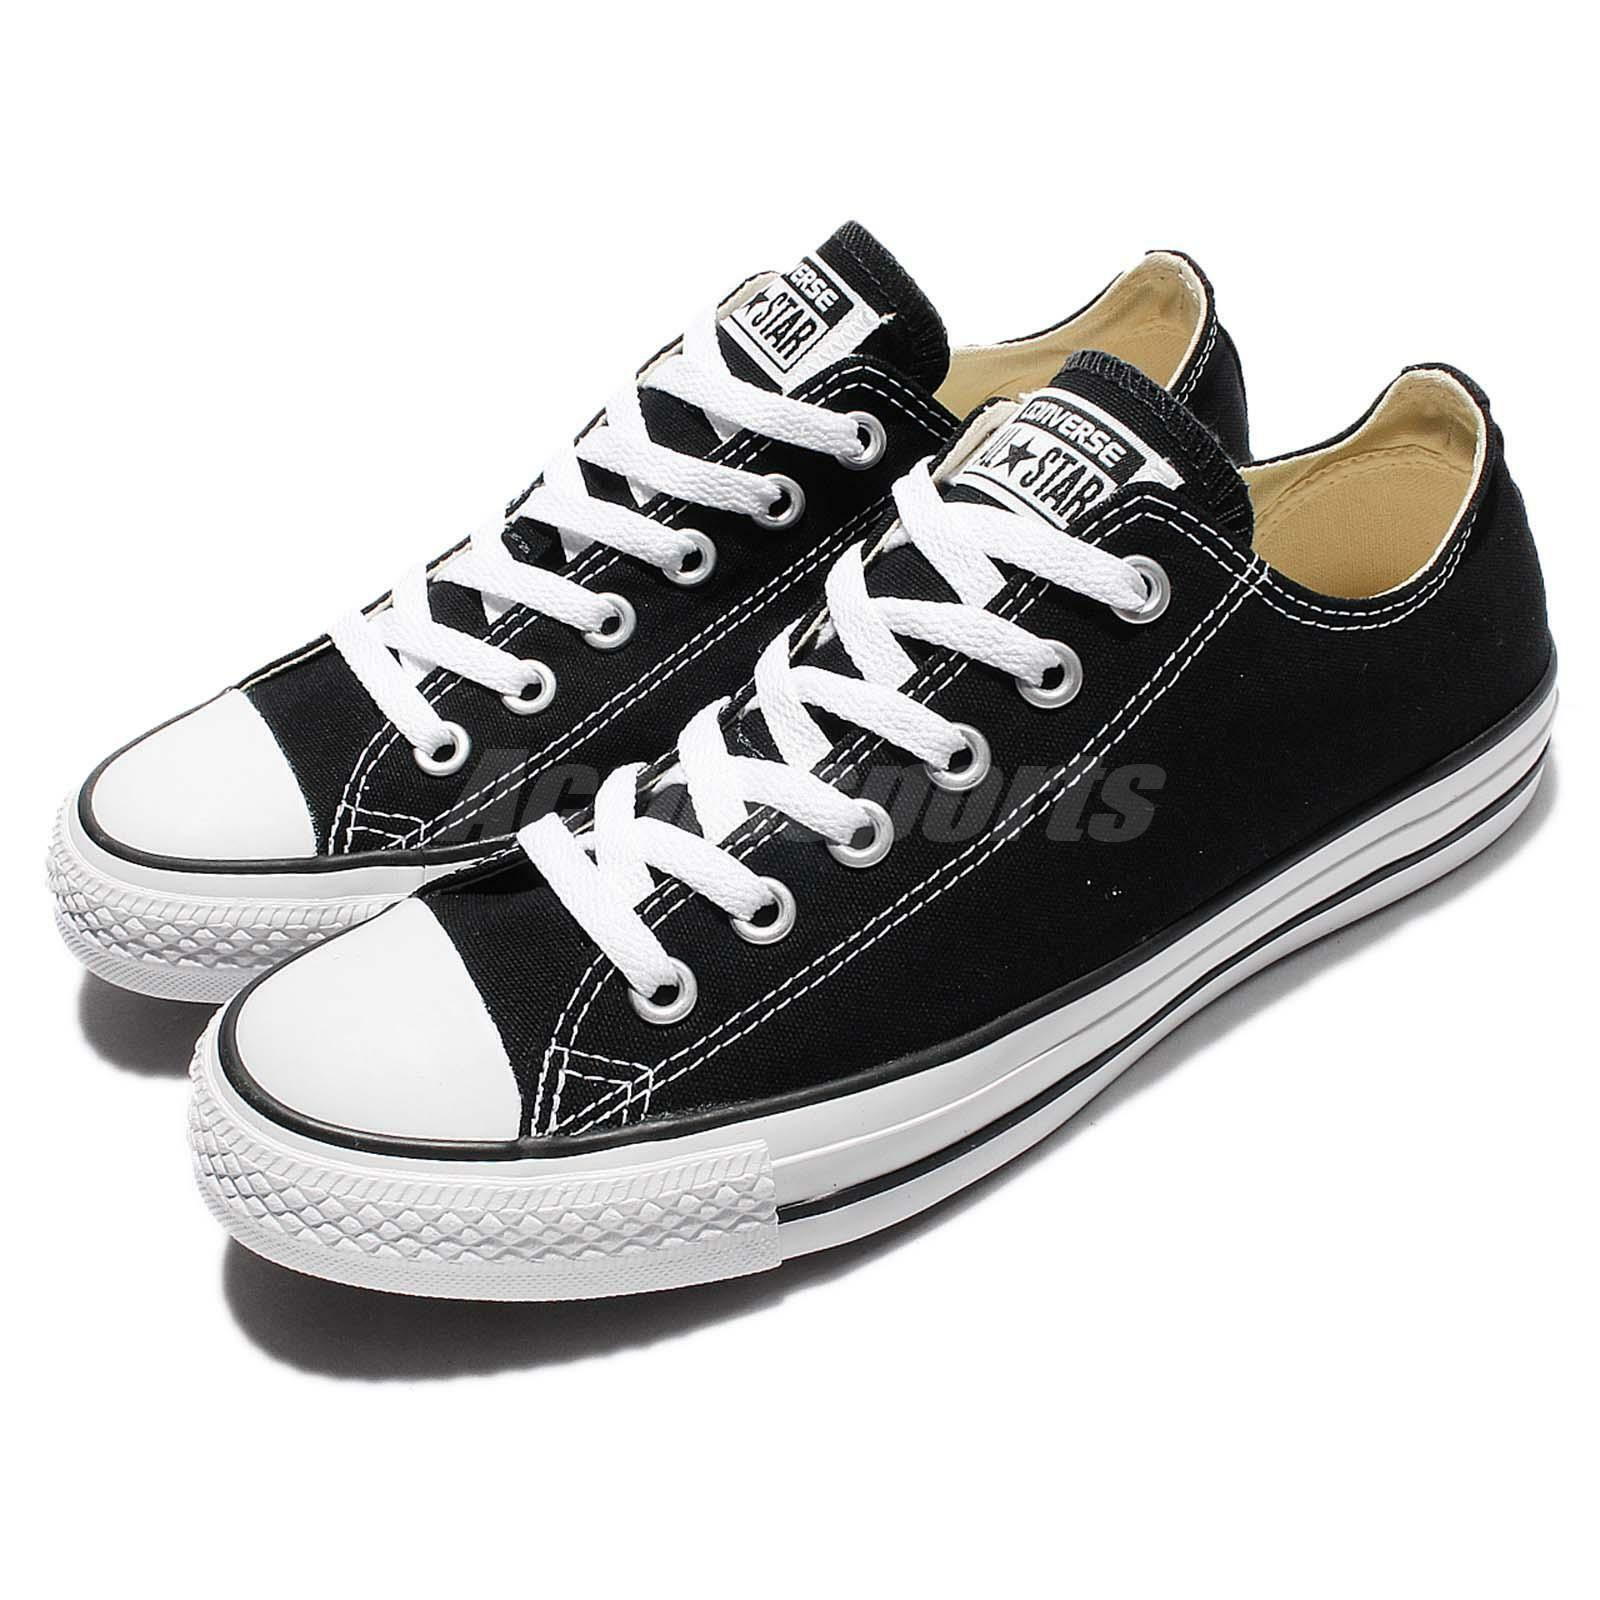 Converse Chuck Taylor All Star OX Oxford Noir Blanc Low Homme Femme Chaussures M9166C